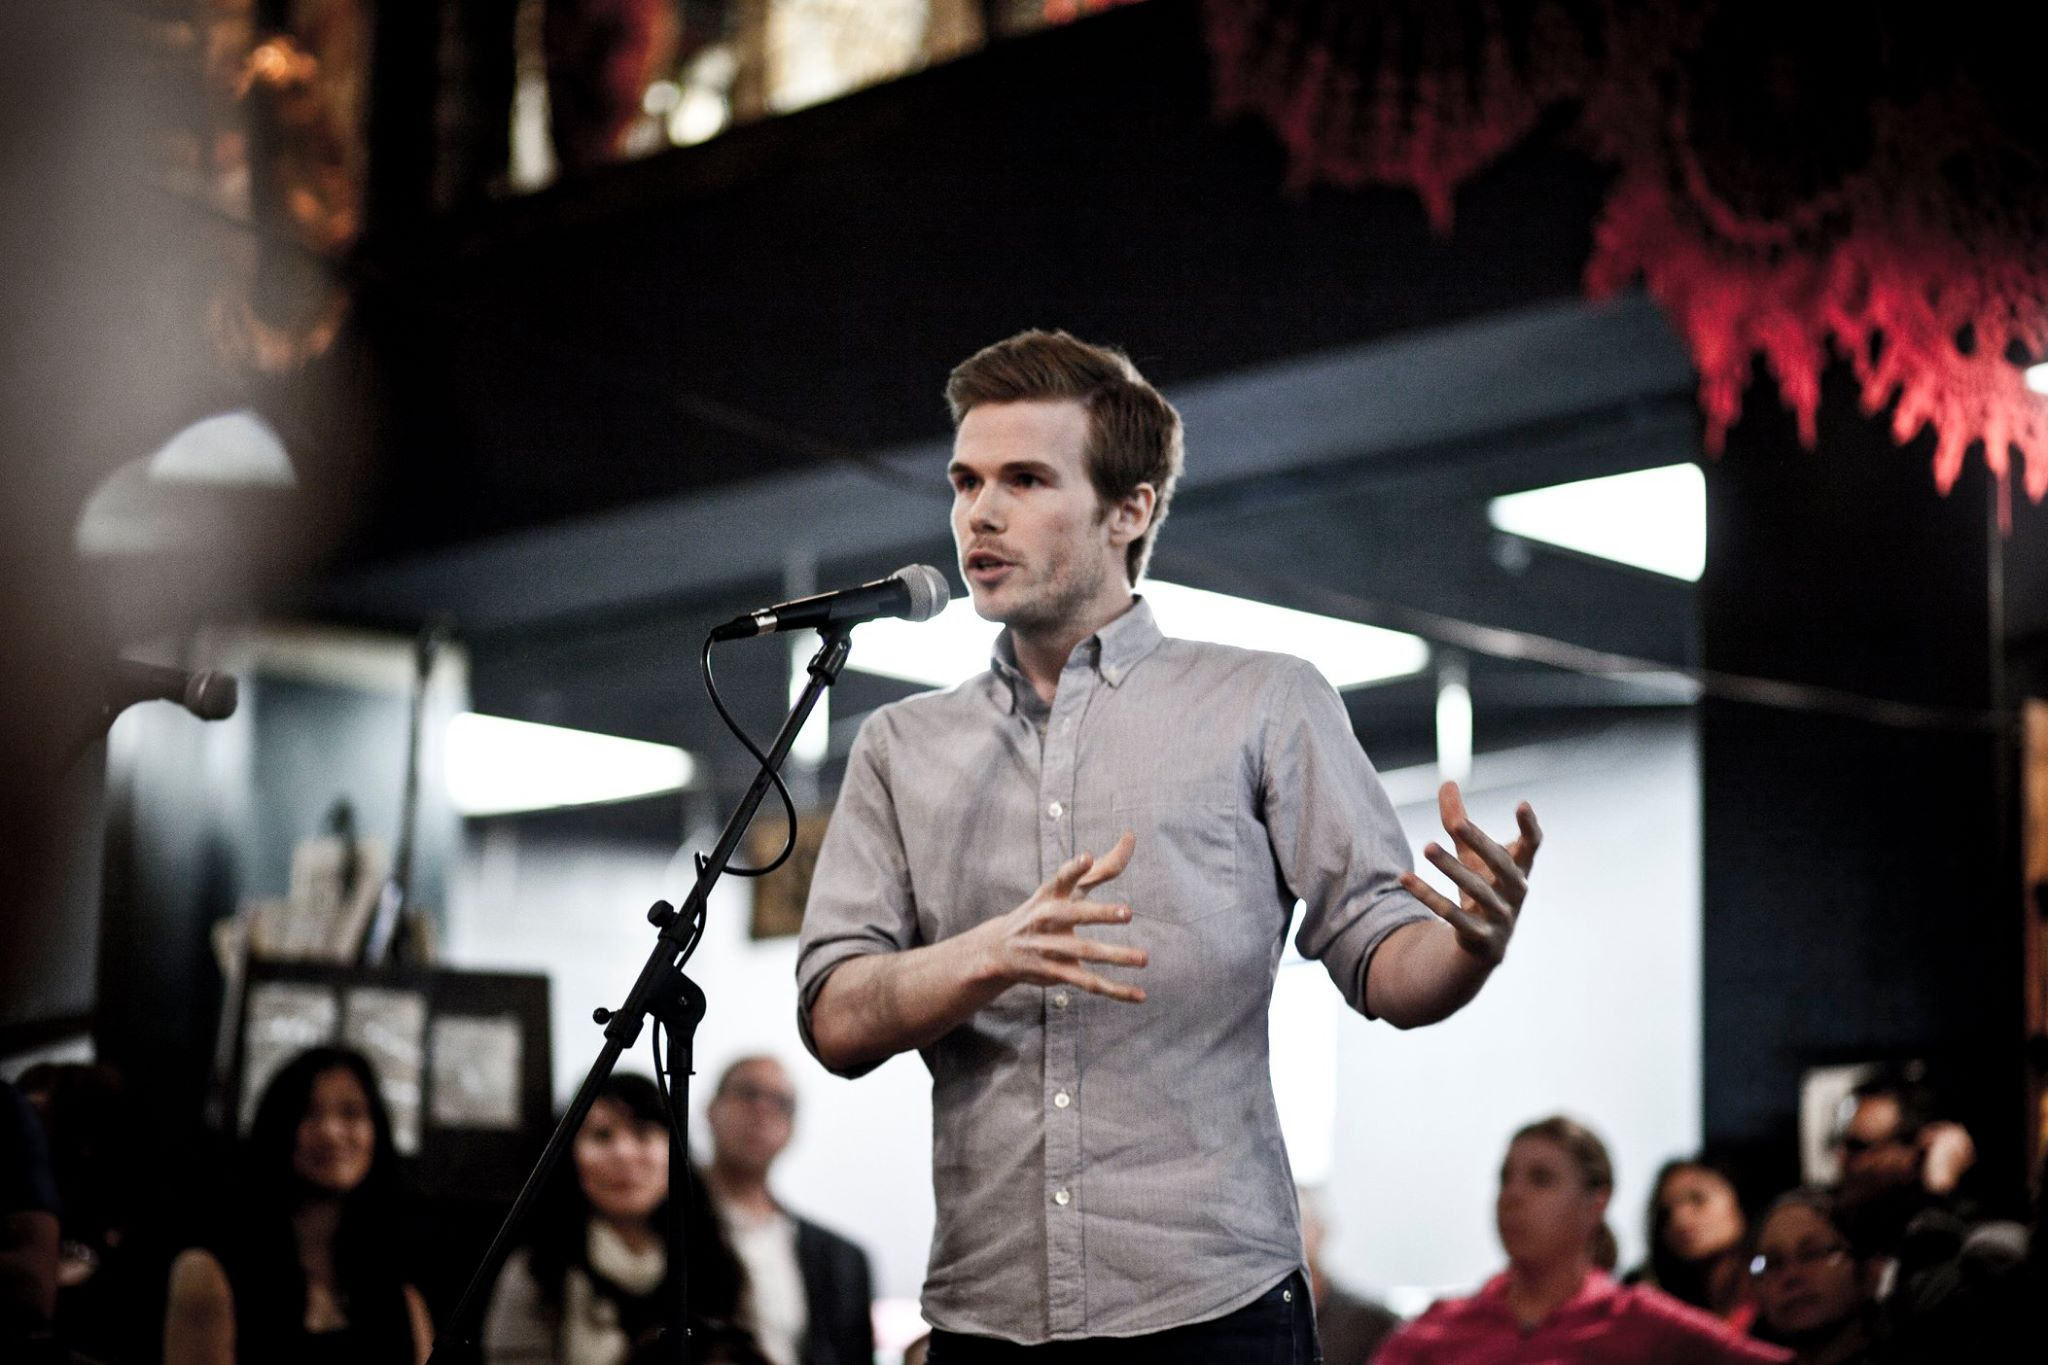 Colin Wright speaking at the Last Bookstore in Los Angeles